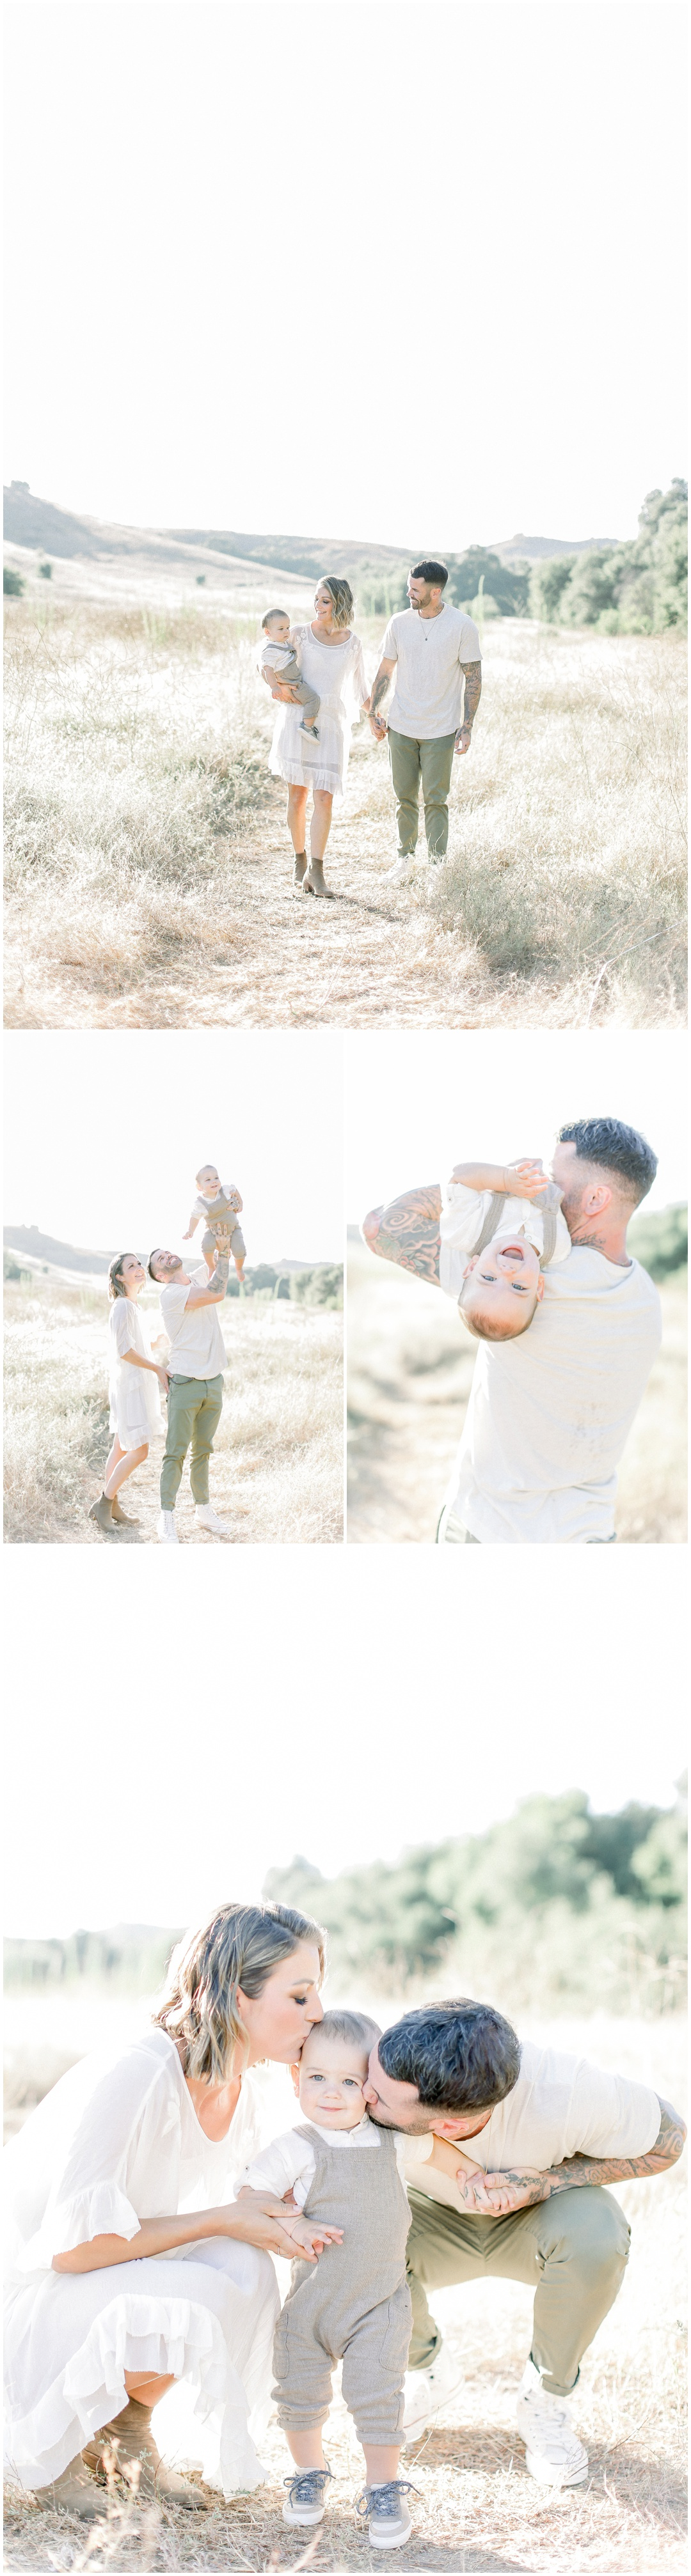 Newport_Beach_Family_Session_Orange_County_Family_Photographer_Thomas_Riley_Wilderness_Park_Carrie_Stotts_Sean_Stotts__4308.jpg